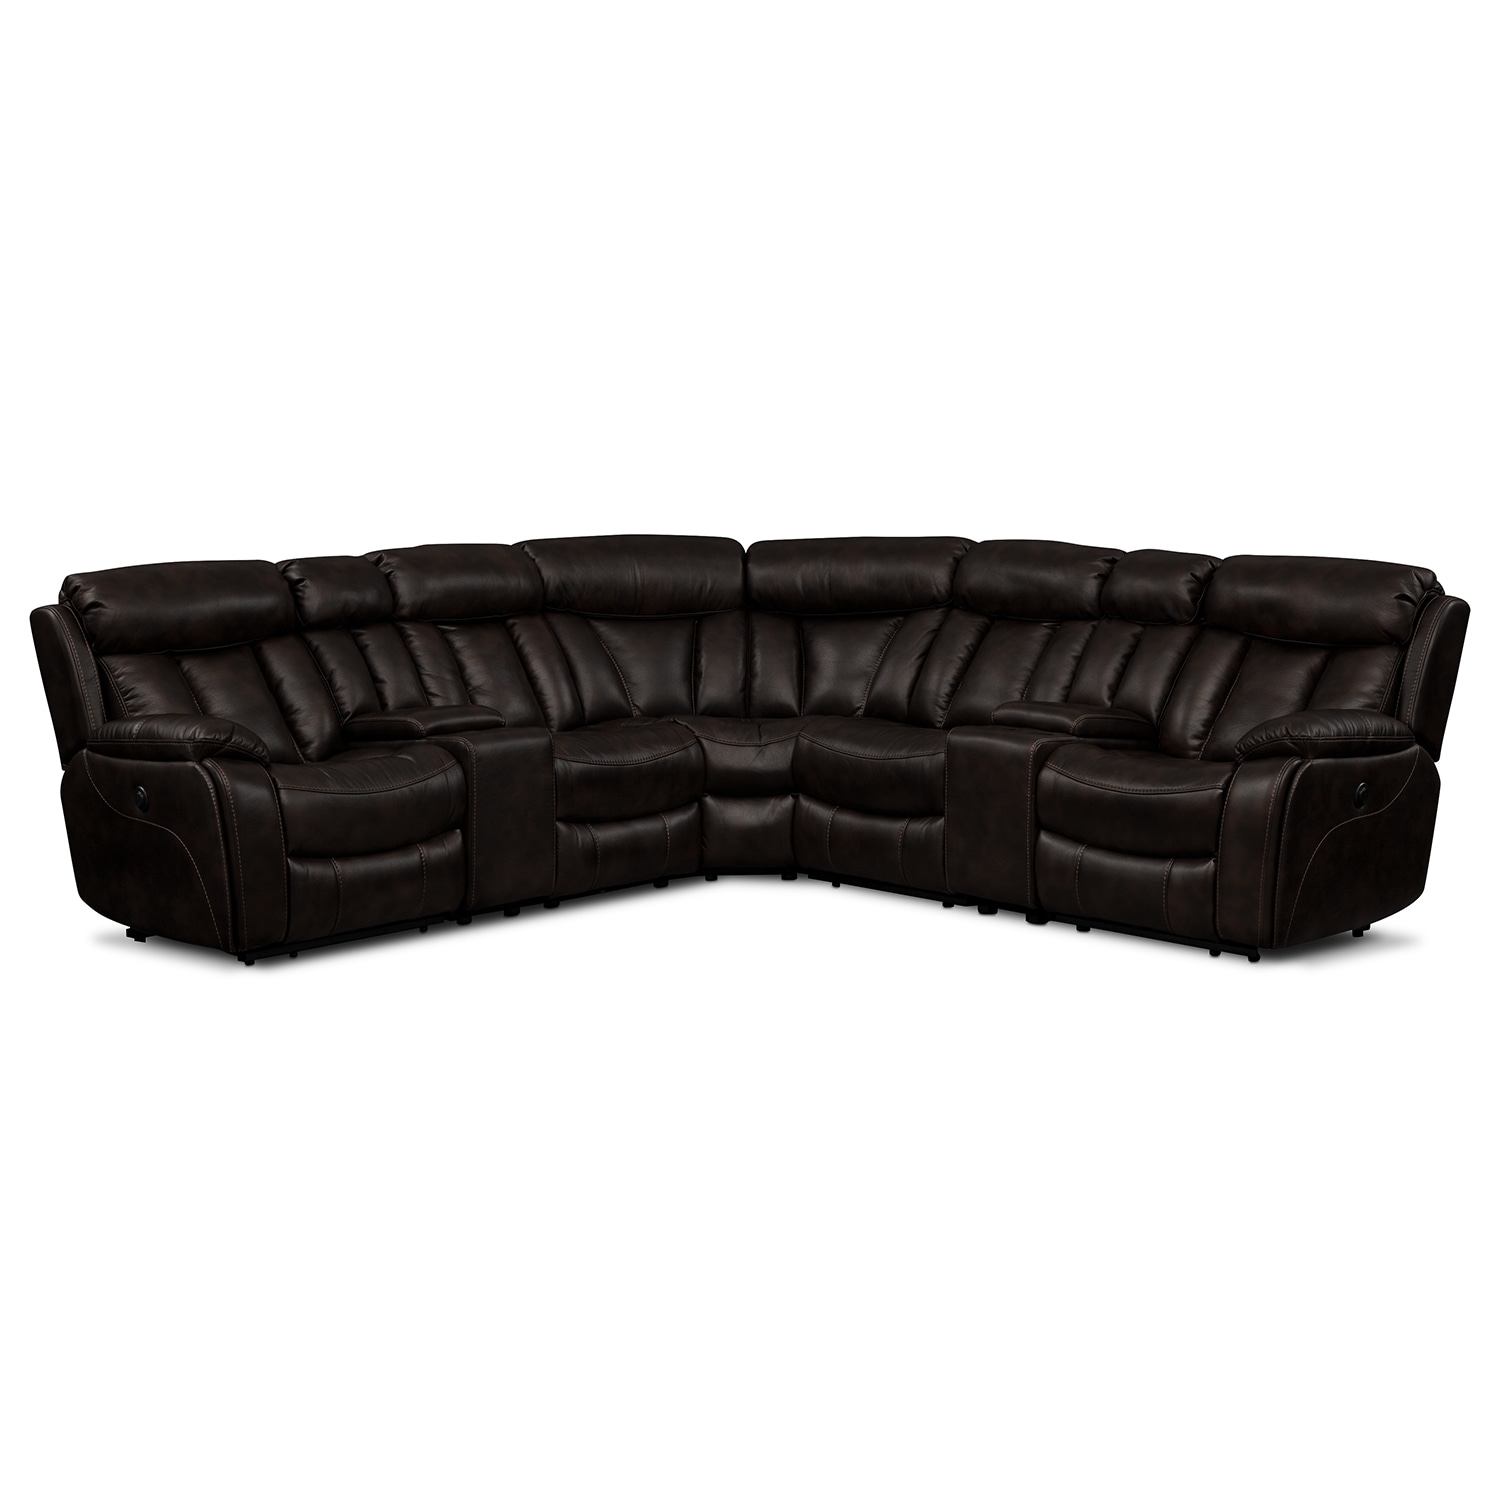 Diablo 7-Piece Power Reclining Sectional With Armless Power Chair inside Haven 3 Piece Sectionals (Image 9 of 32)